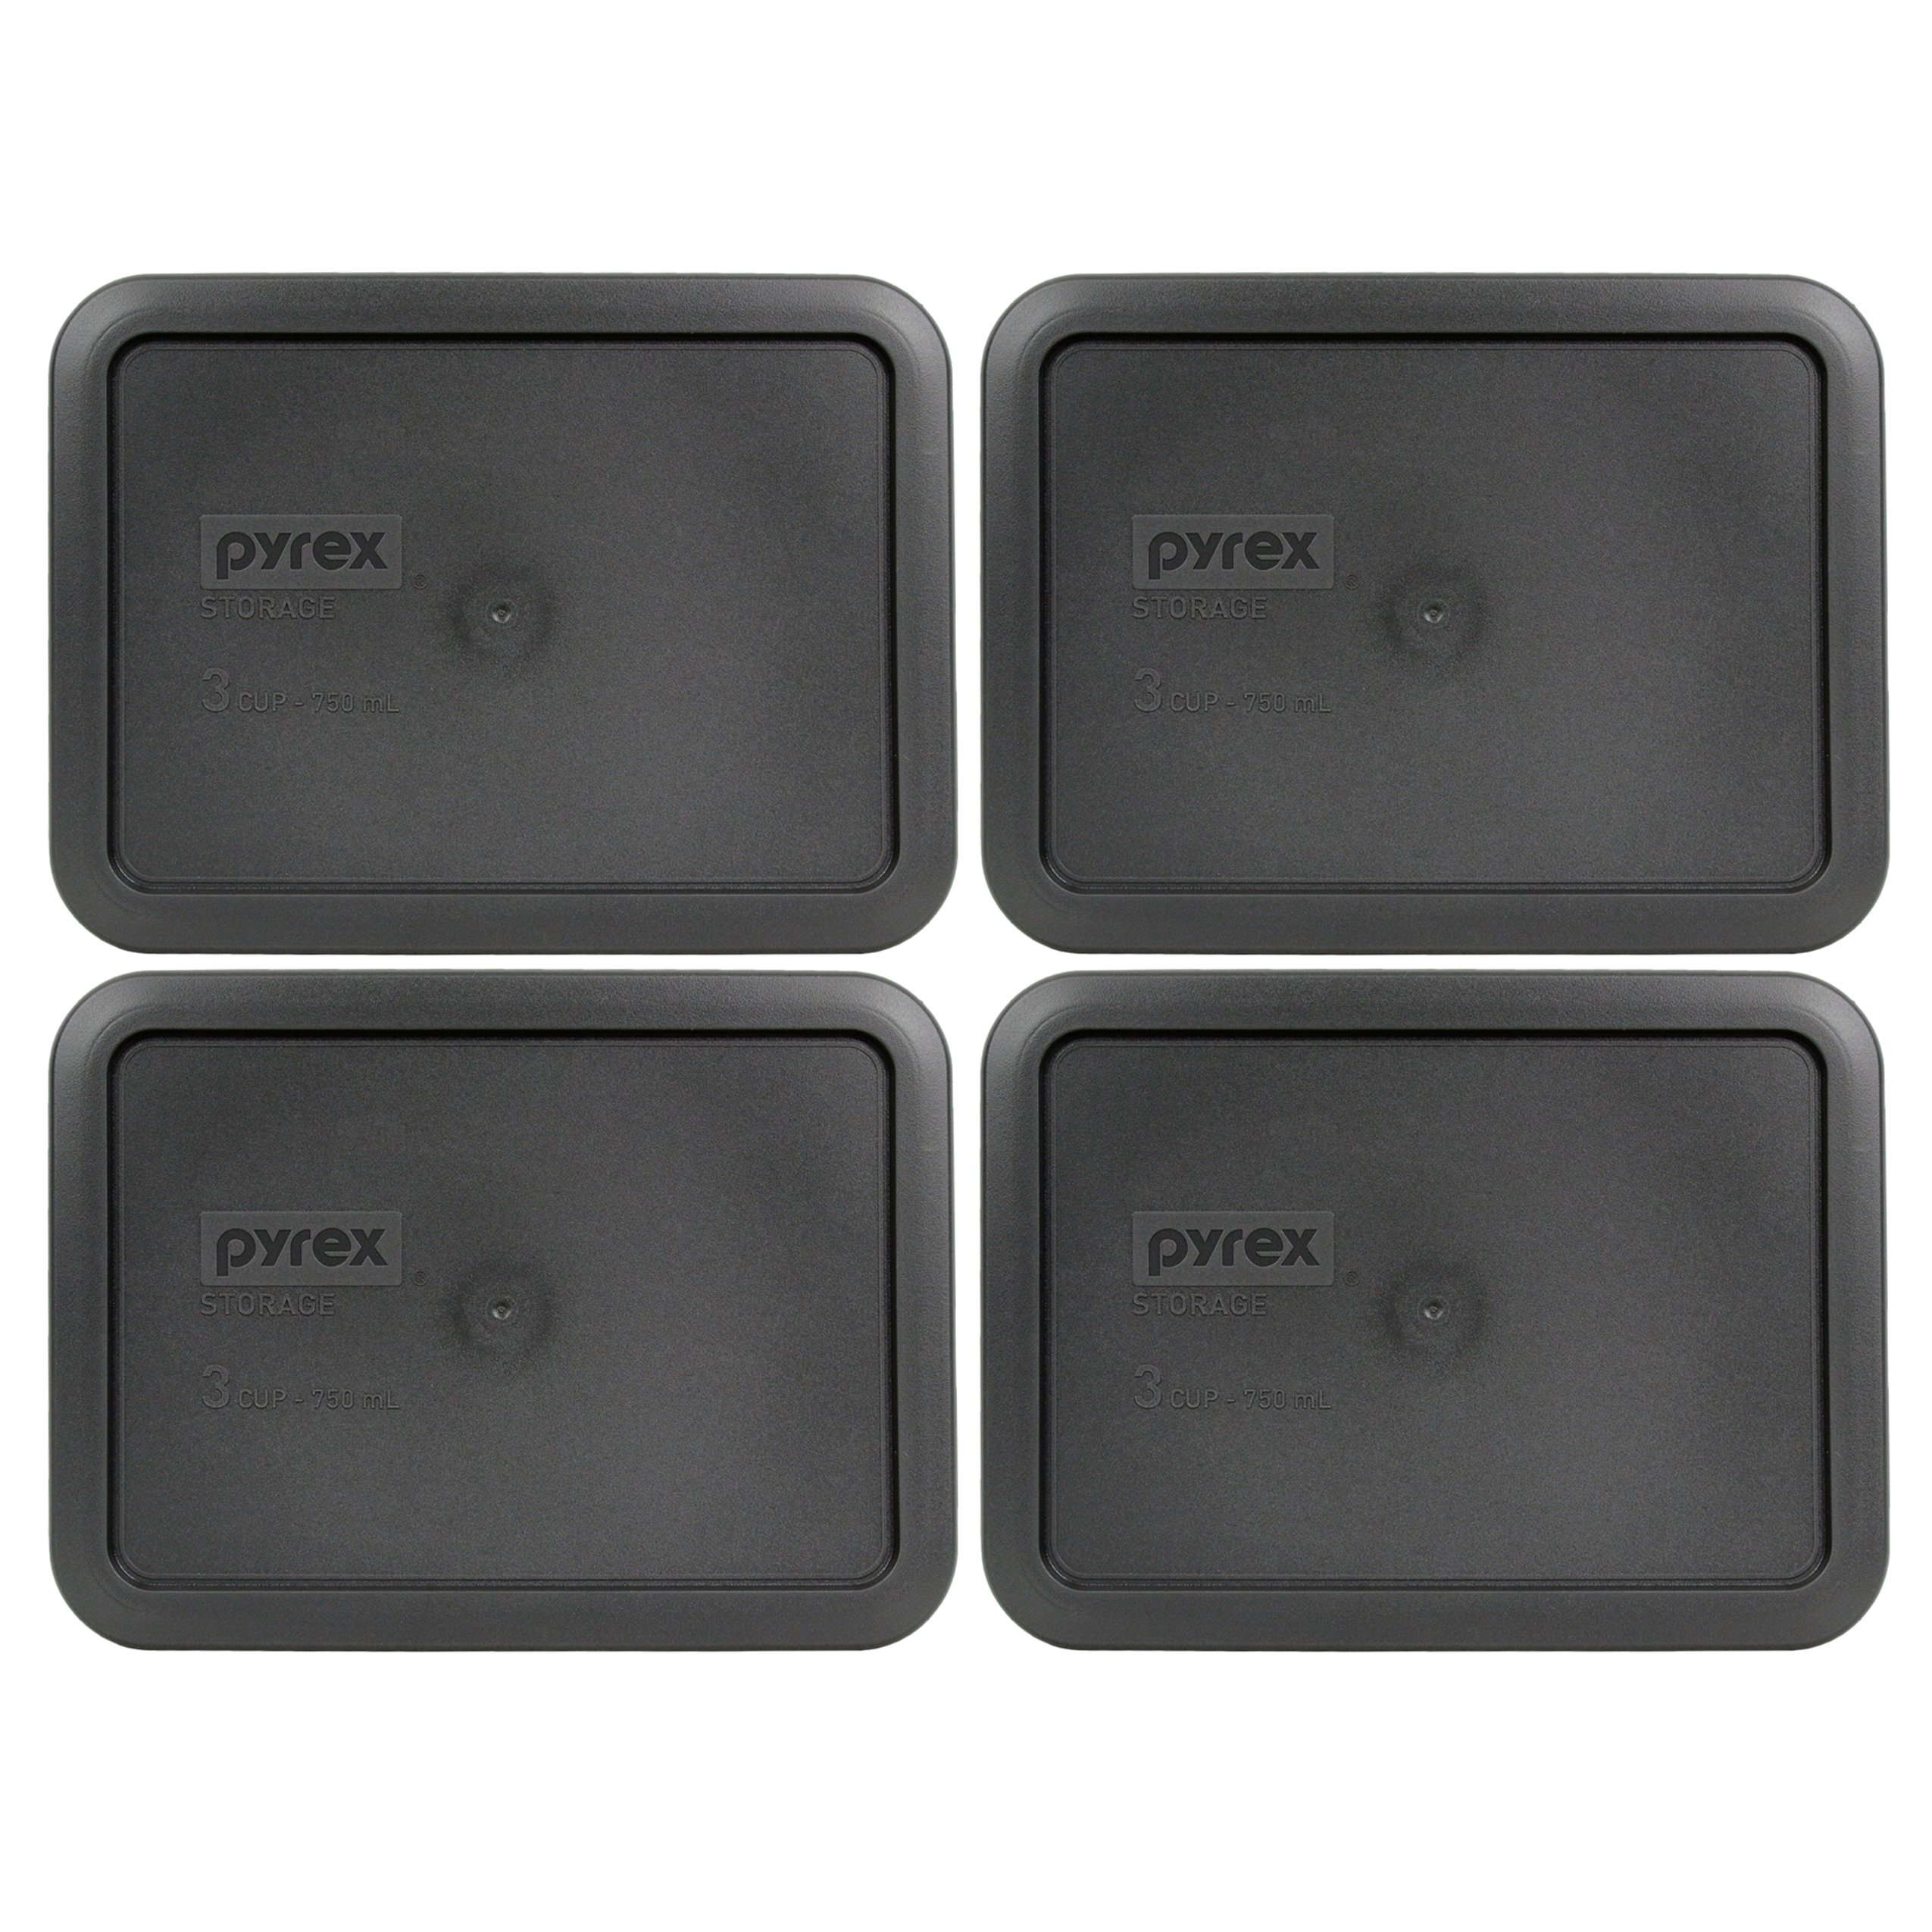 Pyrex 7210-PC Rectangle 3 Cup Charcoal Grey Storage Lid - 4 Pack